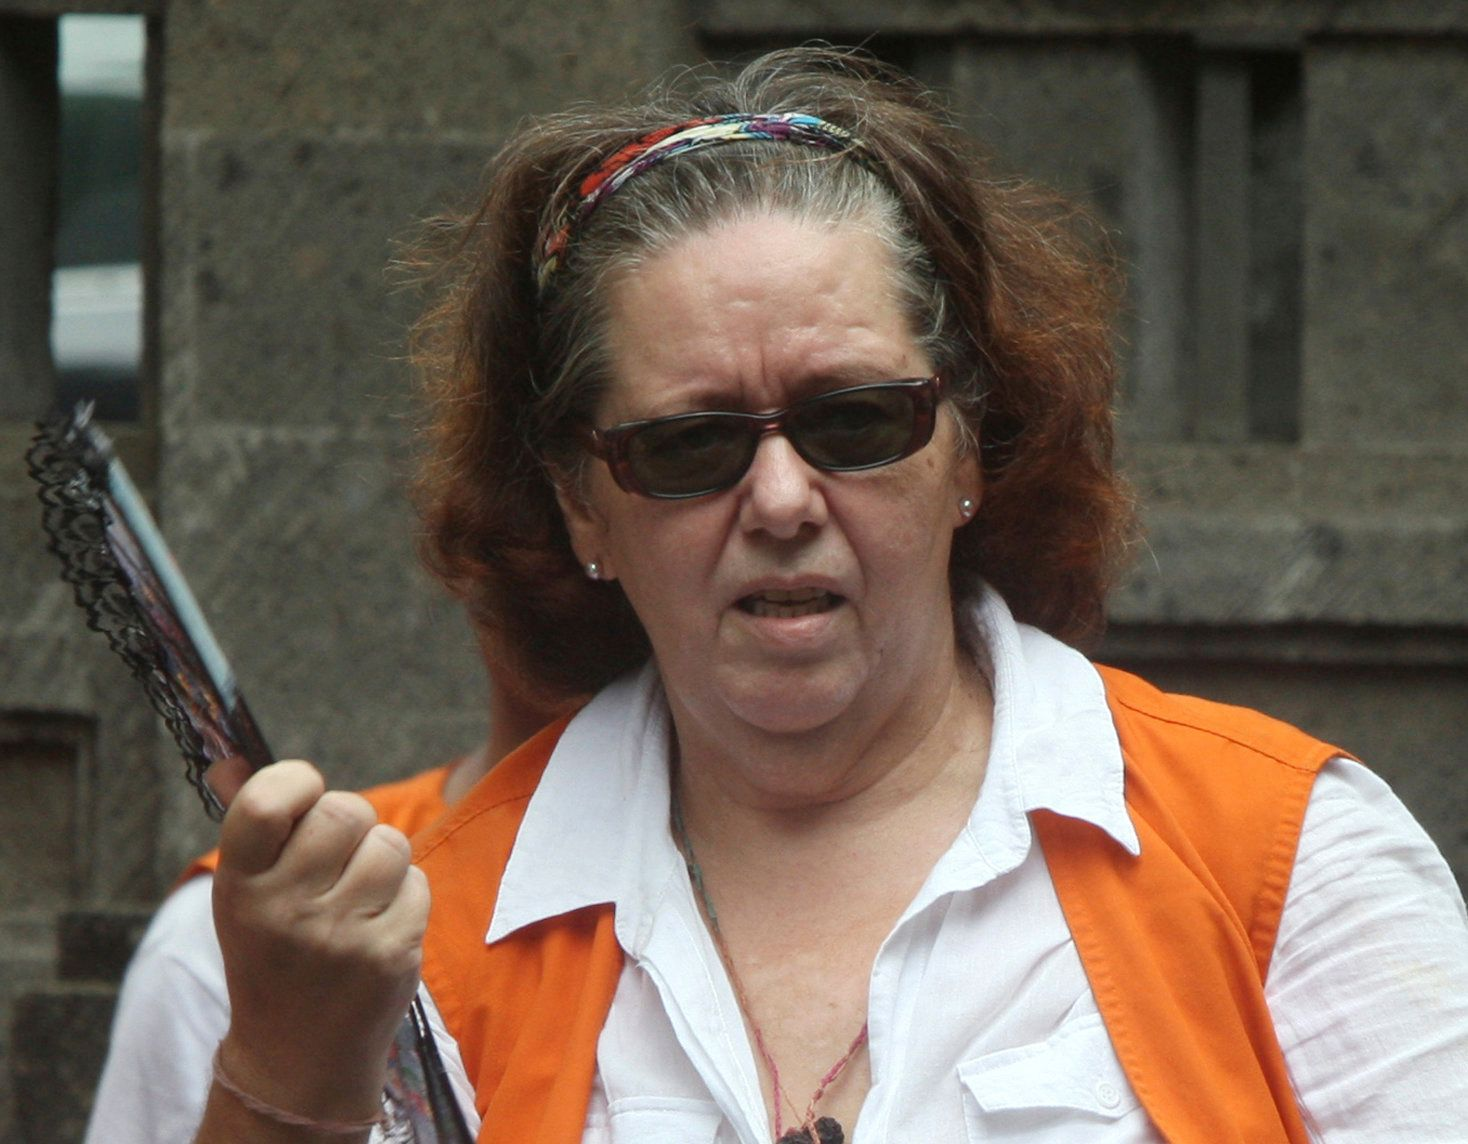 Lindsay Sandiford may be executed in Indonesia within